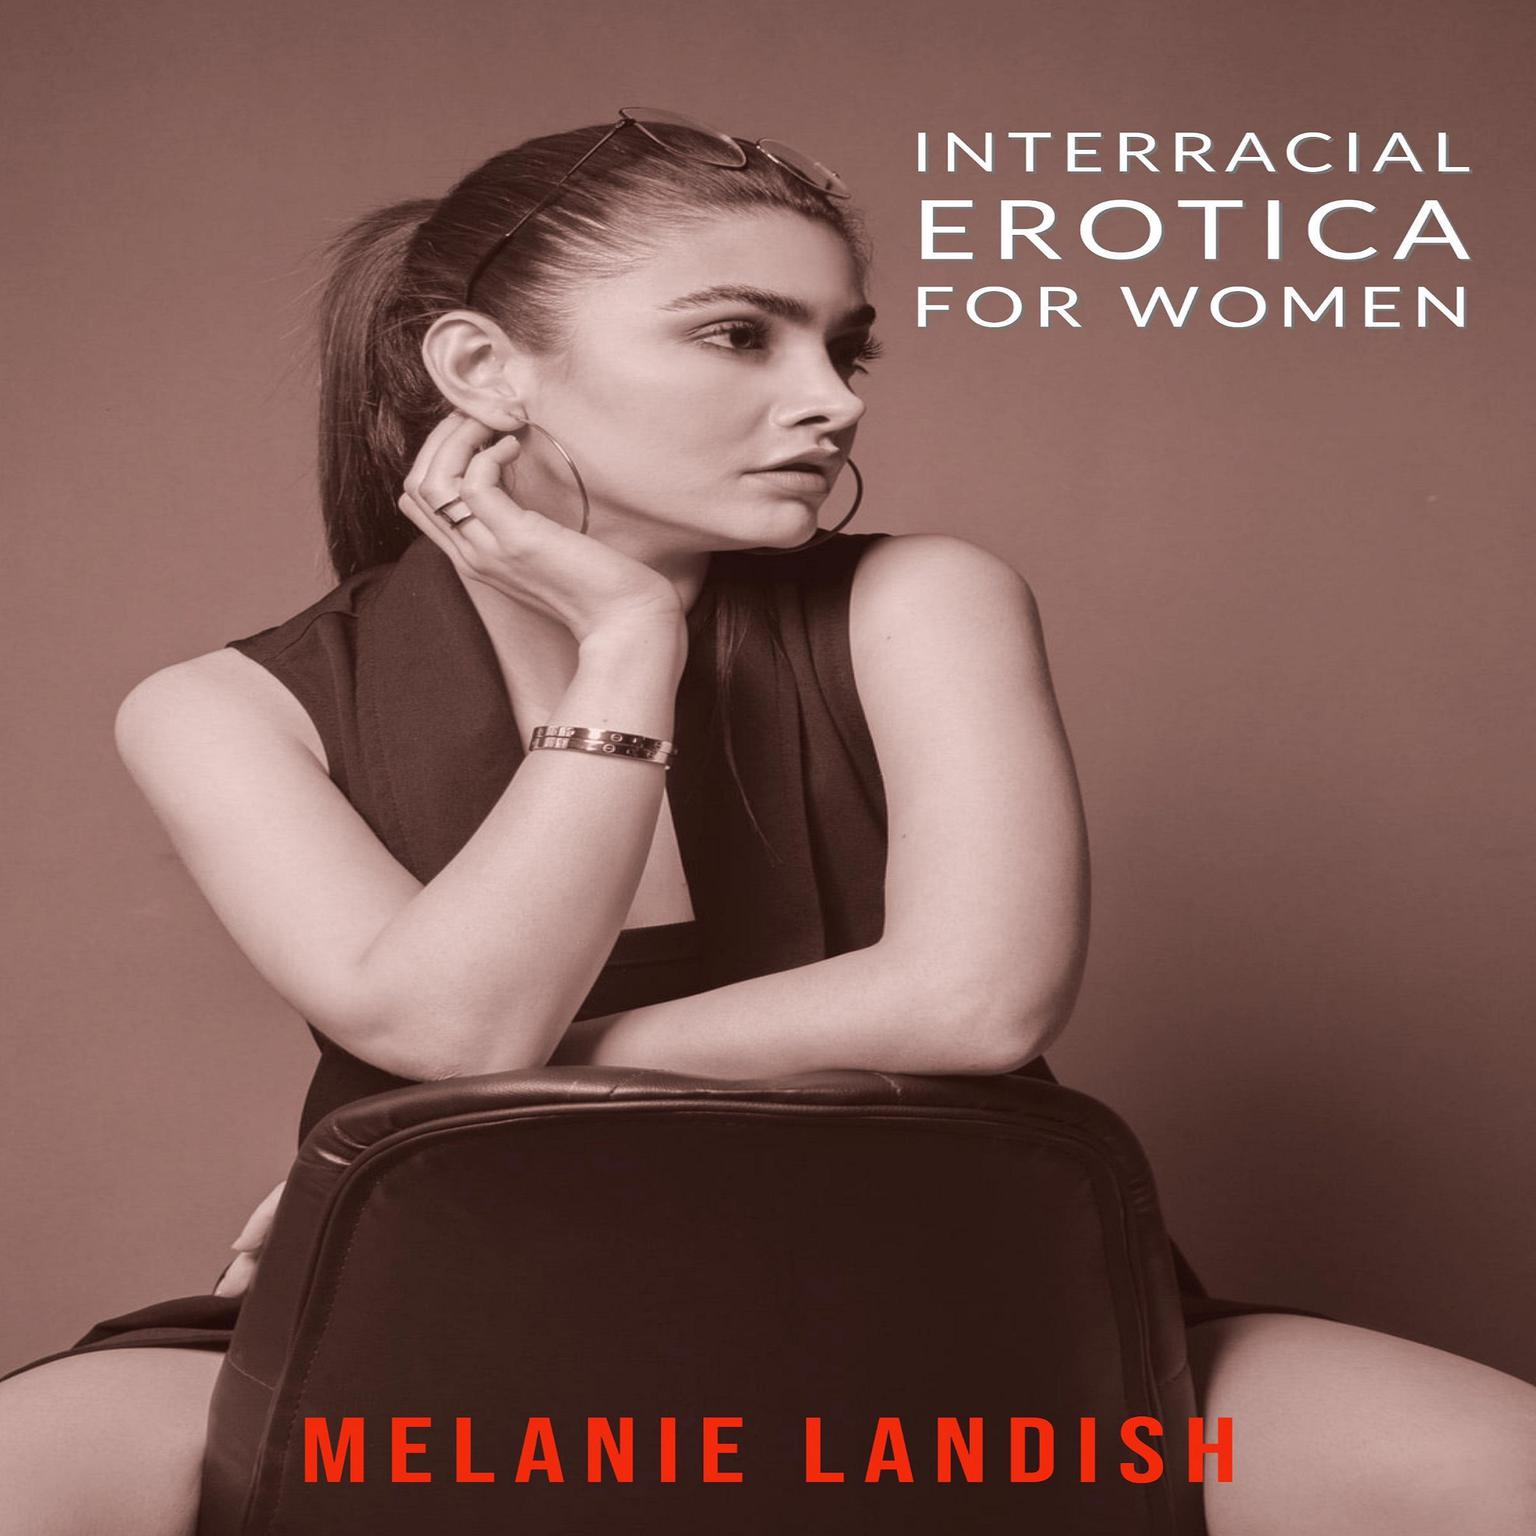 Interracial Erotica For Women: : An Arousing Collection of Sexual Adventures of Hot Women, Cuckold Husbands And Massive Black Men Audiobook, by Melanie Landish